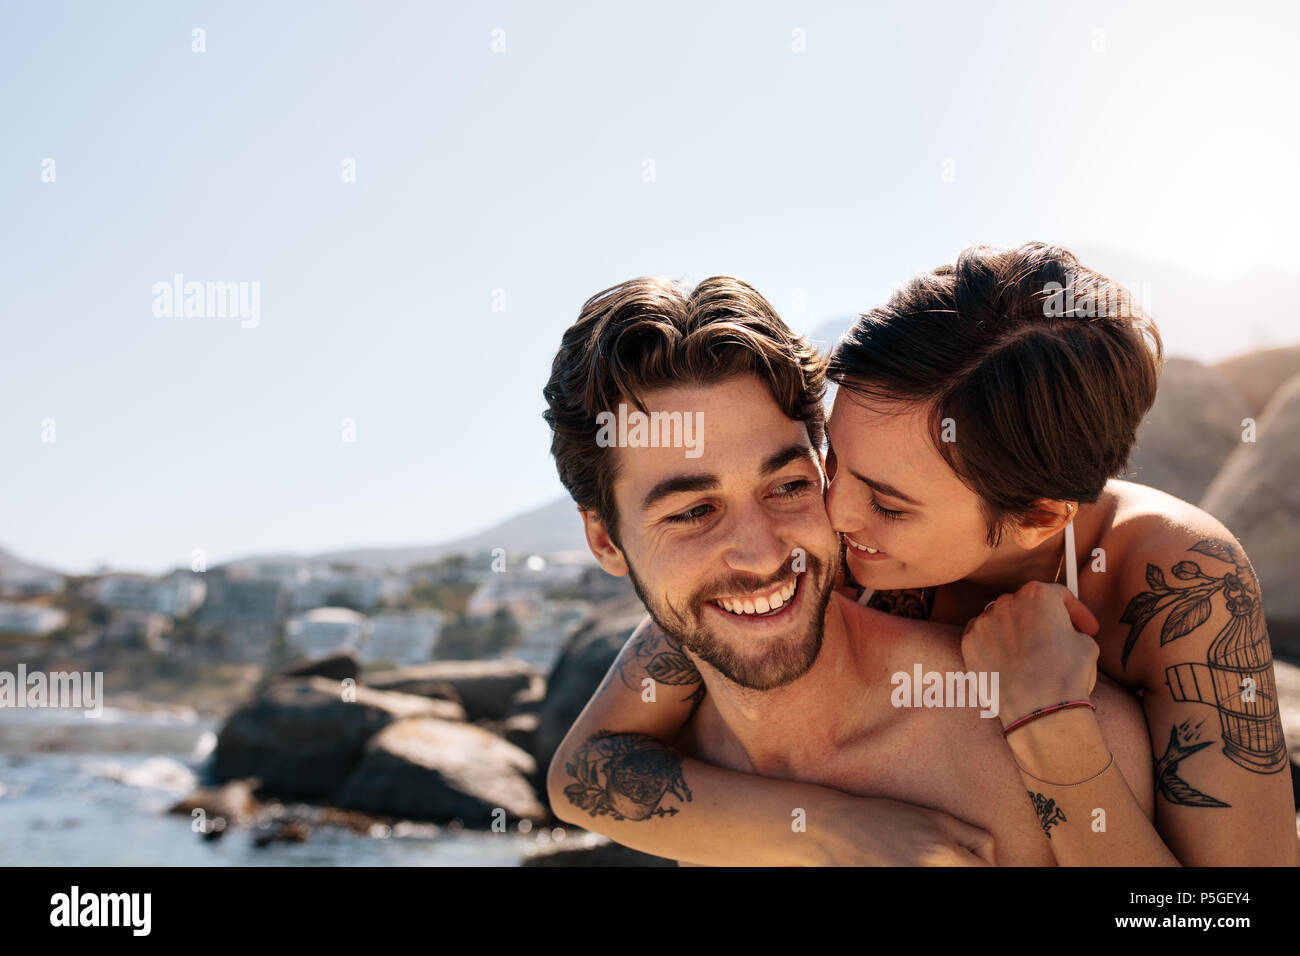 Woman having fun riding piggy back on man at the beach. Tourist couple in a happy and romantic mood enjoying a holiday. - Stock Image